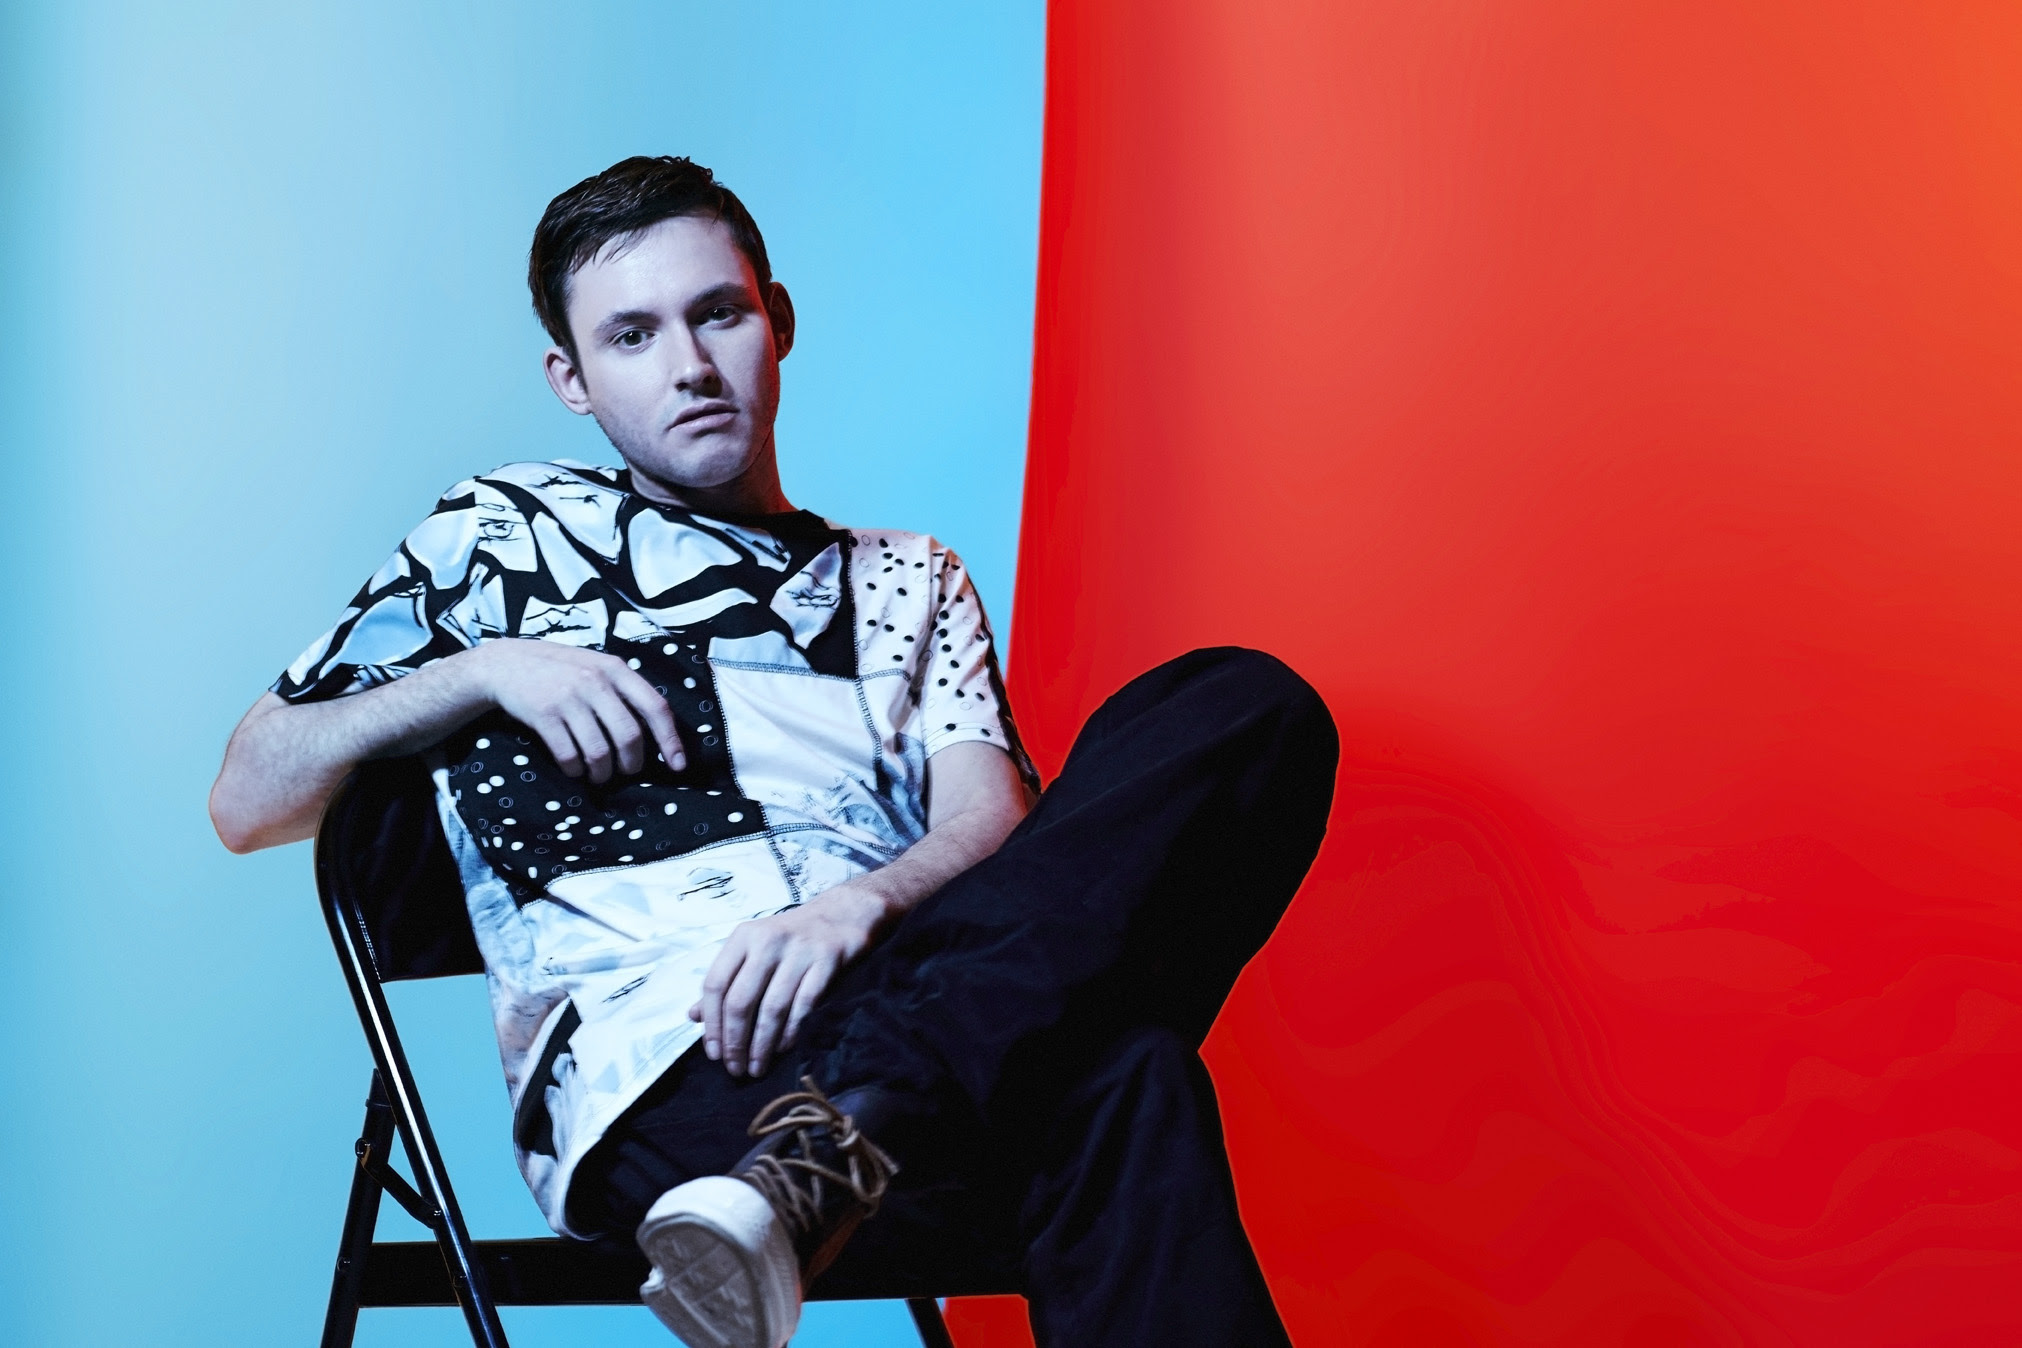 """Hudson Mohawke Shares New Video for """"System"""", 2nd Part Of US Tour Starts Nov 6th"""